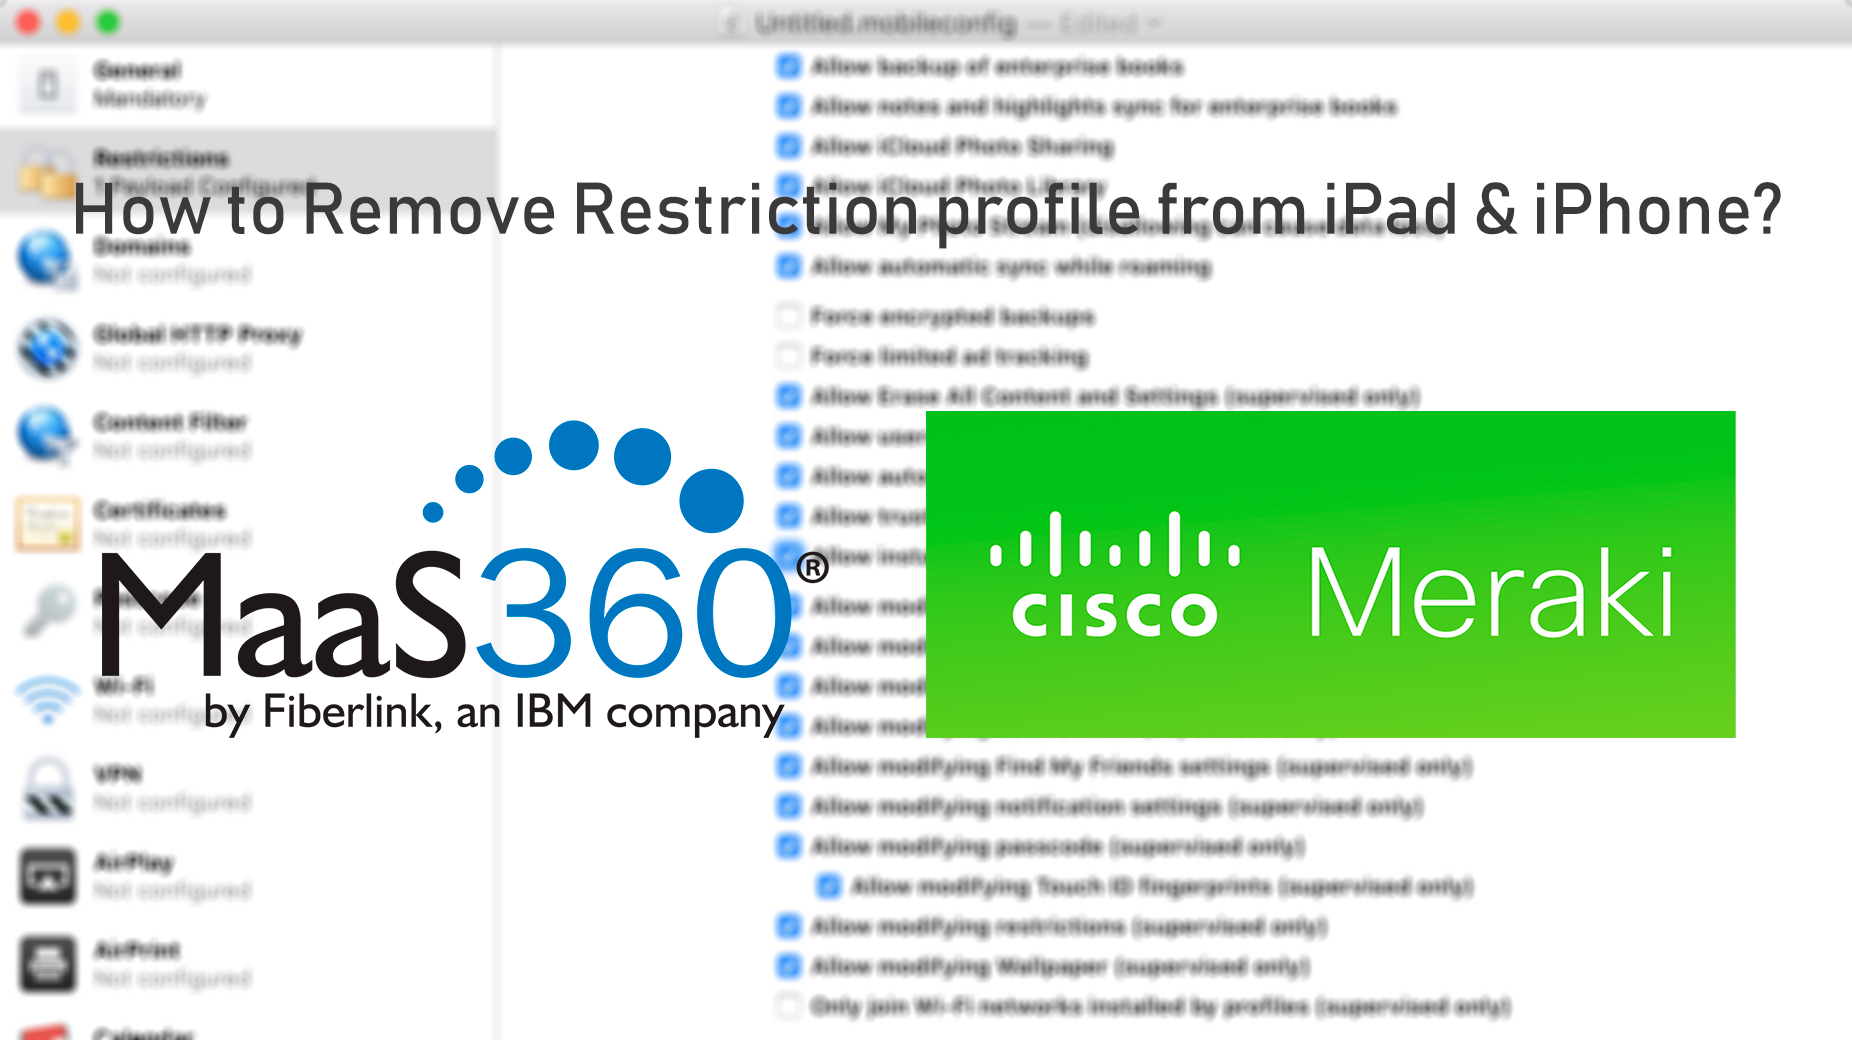 Remove IBM MaaS360 & Cisco Meraki MDM Restriction profile from iPad & iPhone